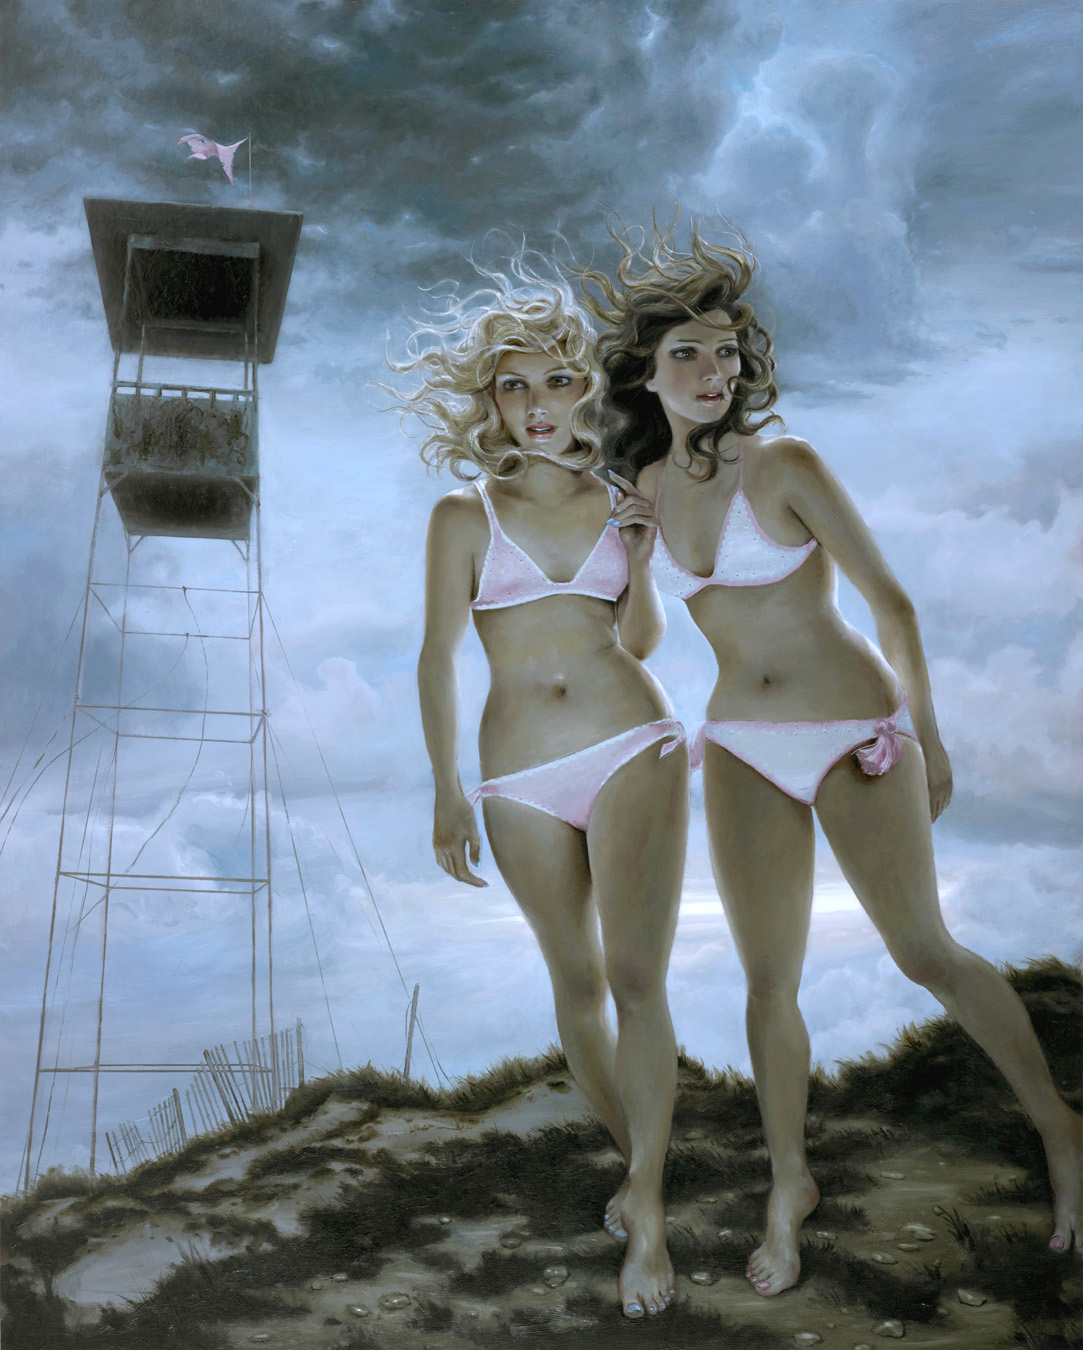 Crochet Bikinis | oil on panel | 48x60 in | 2012